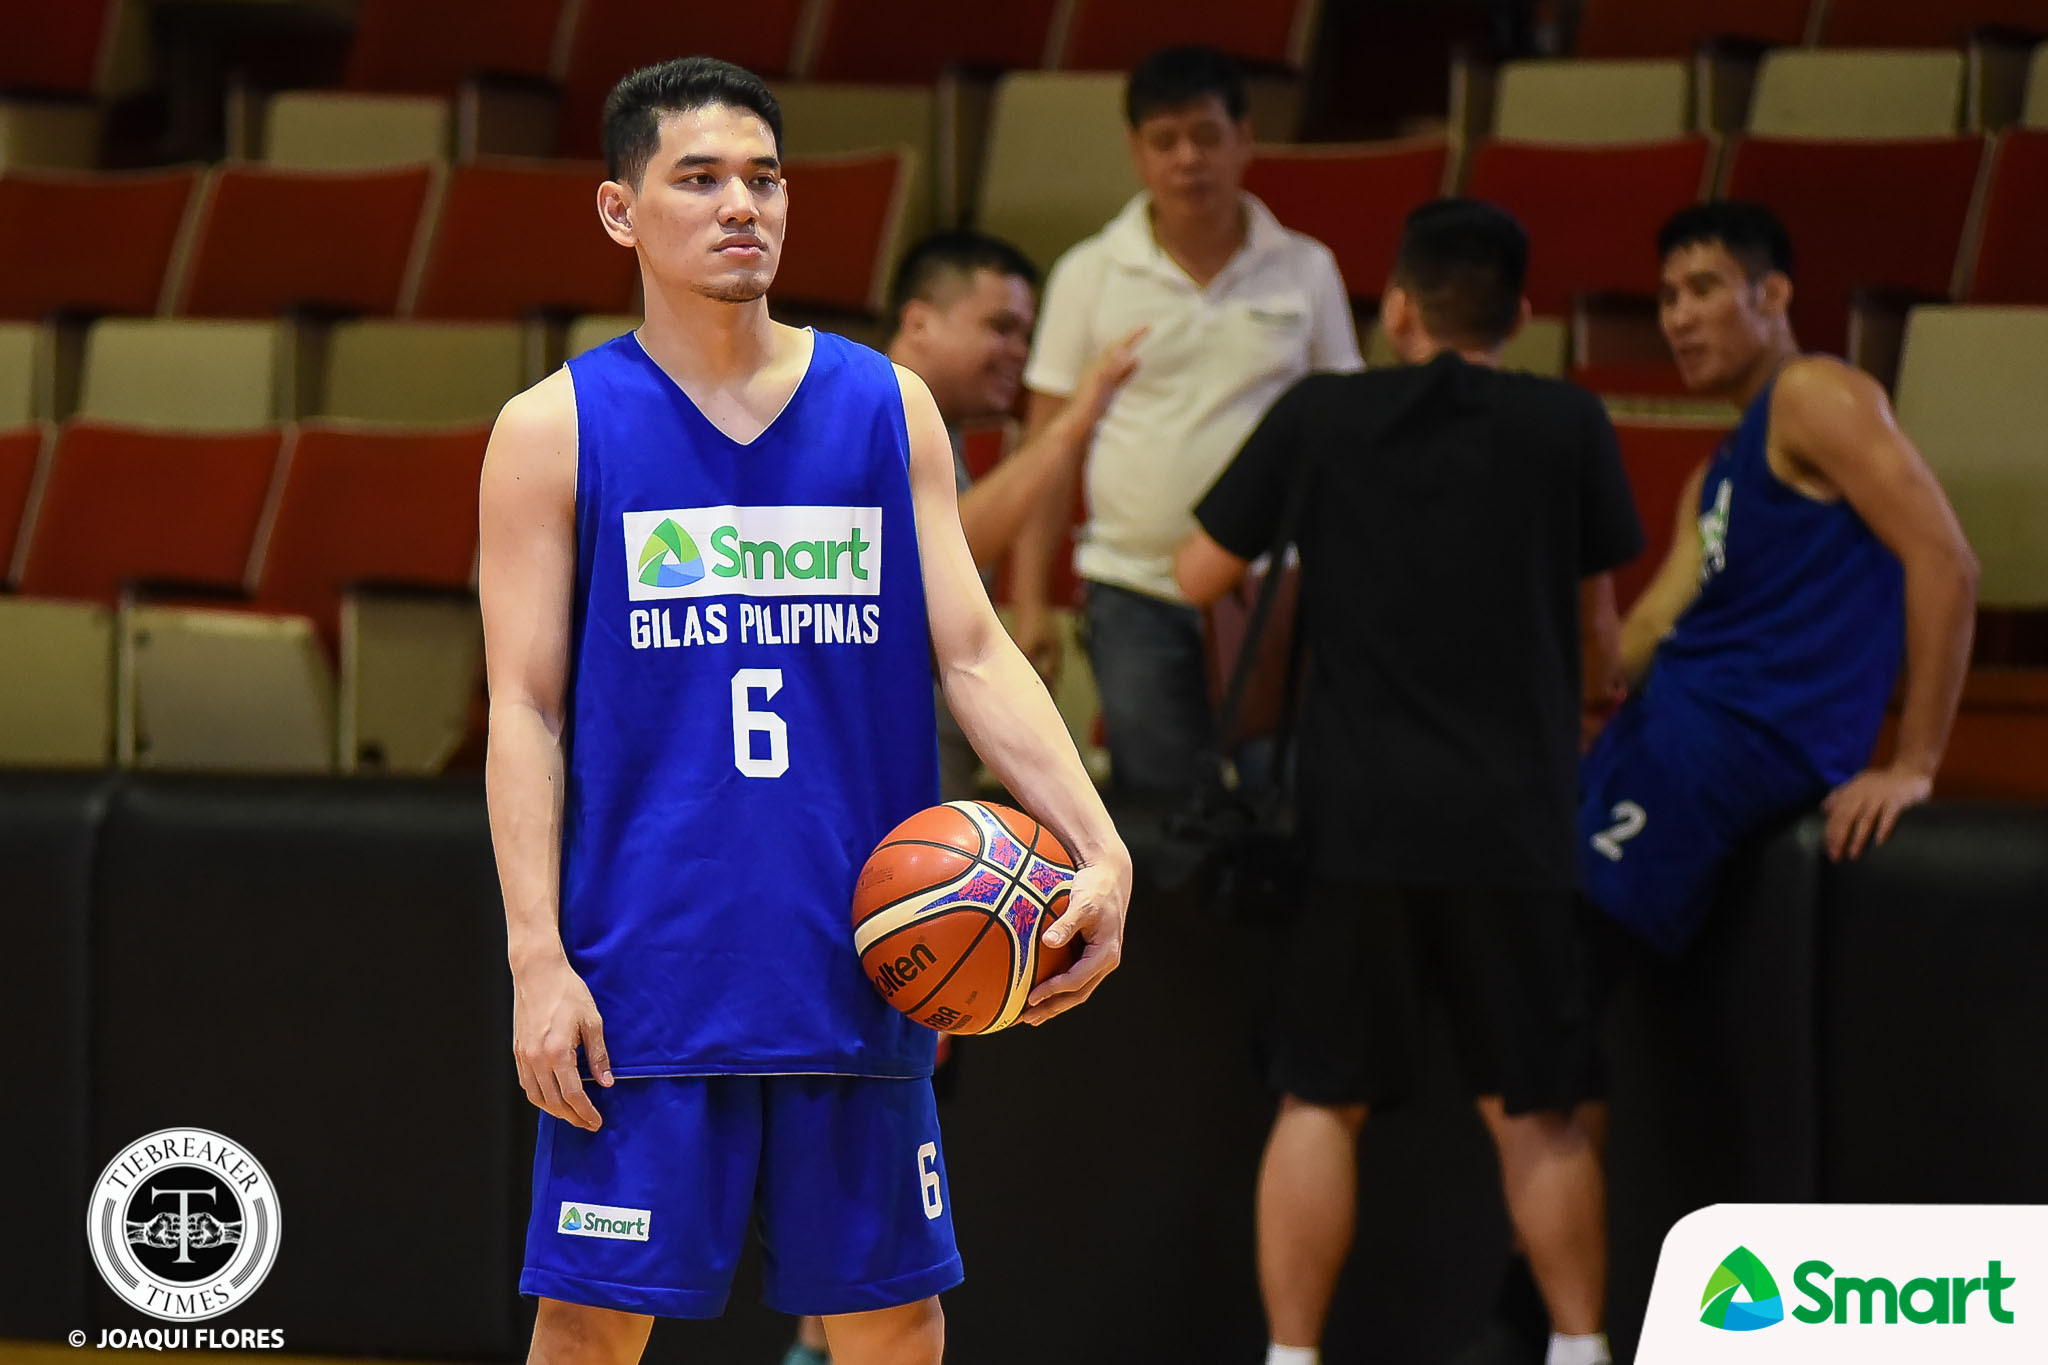 Philippine Sports News - Tiebreaker Times VIDEO: Kevin Alas on practicing like never before for Australia clash 2019 FIBA World Cup Qualifiers Basketball News  Kevin Alas 2019 FIBA World Cup Qualifiers Group B 2019 FIBA World Cup Qualifiers